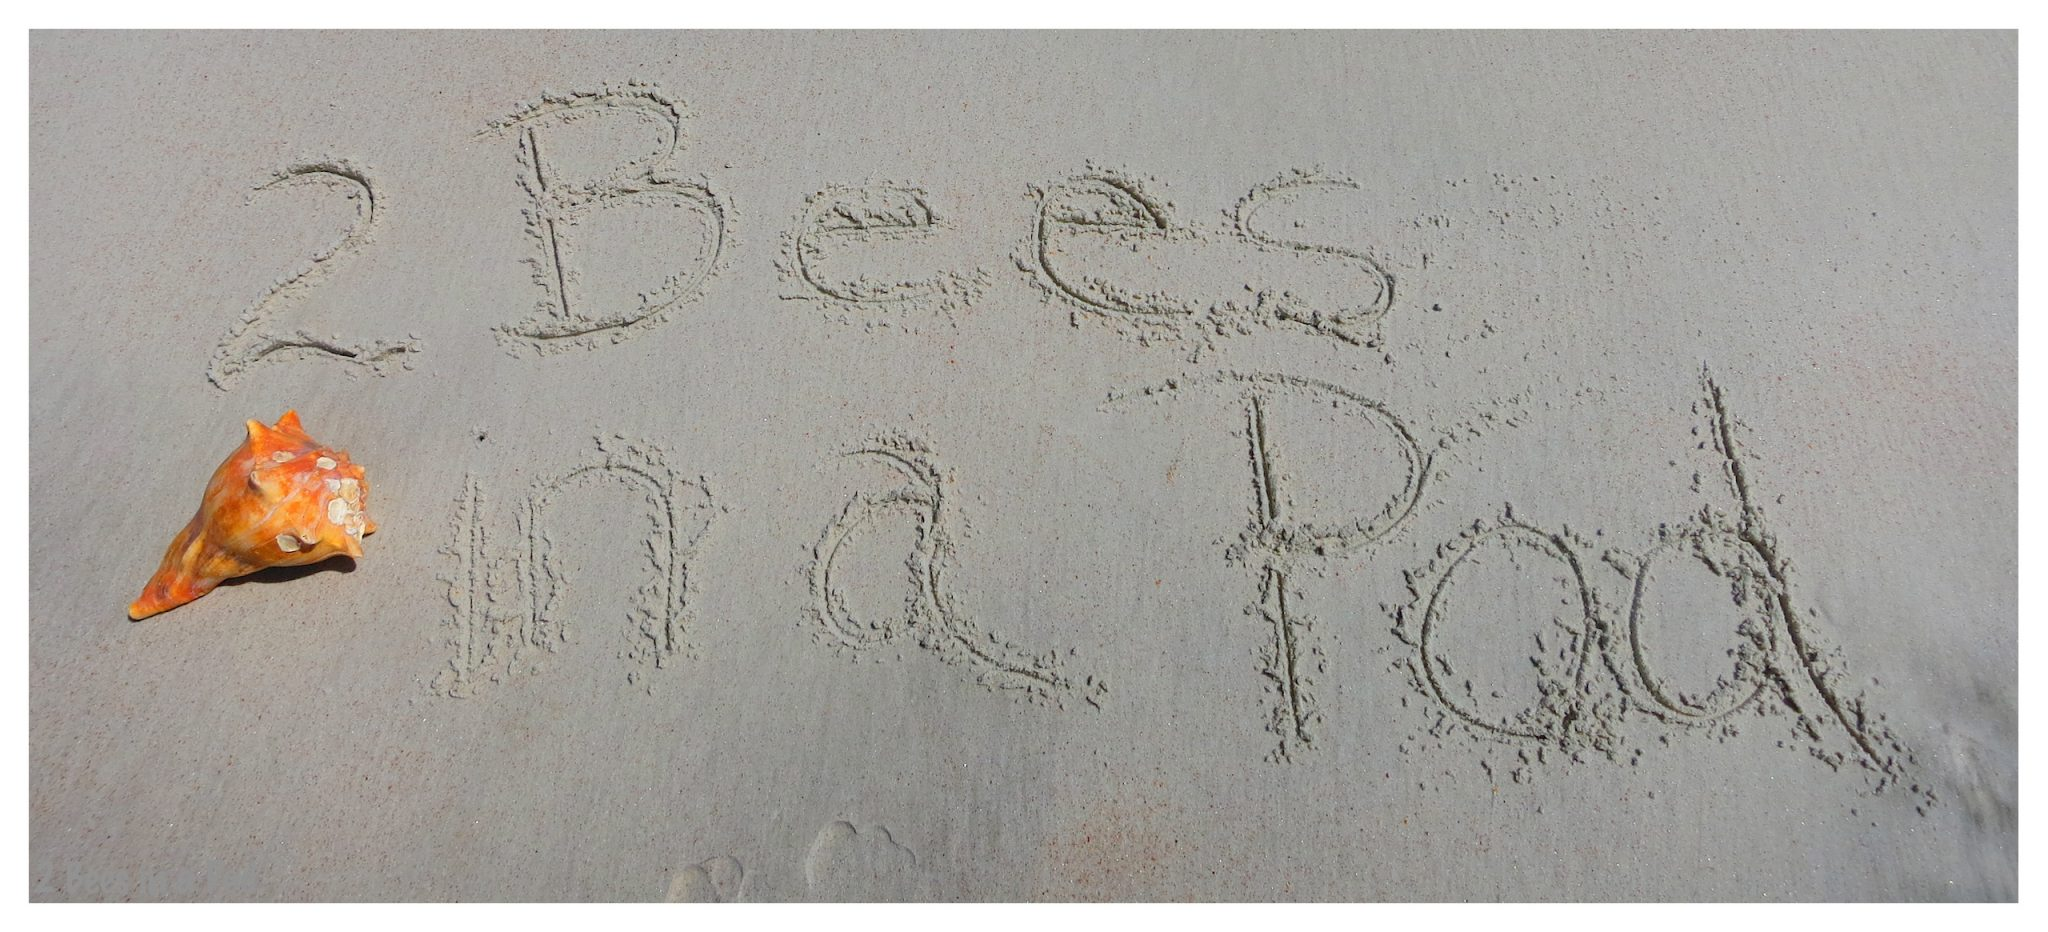 @ Bees in a Pod - spending a week at the together in Crescent Beach, Florida